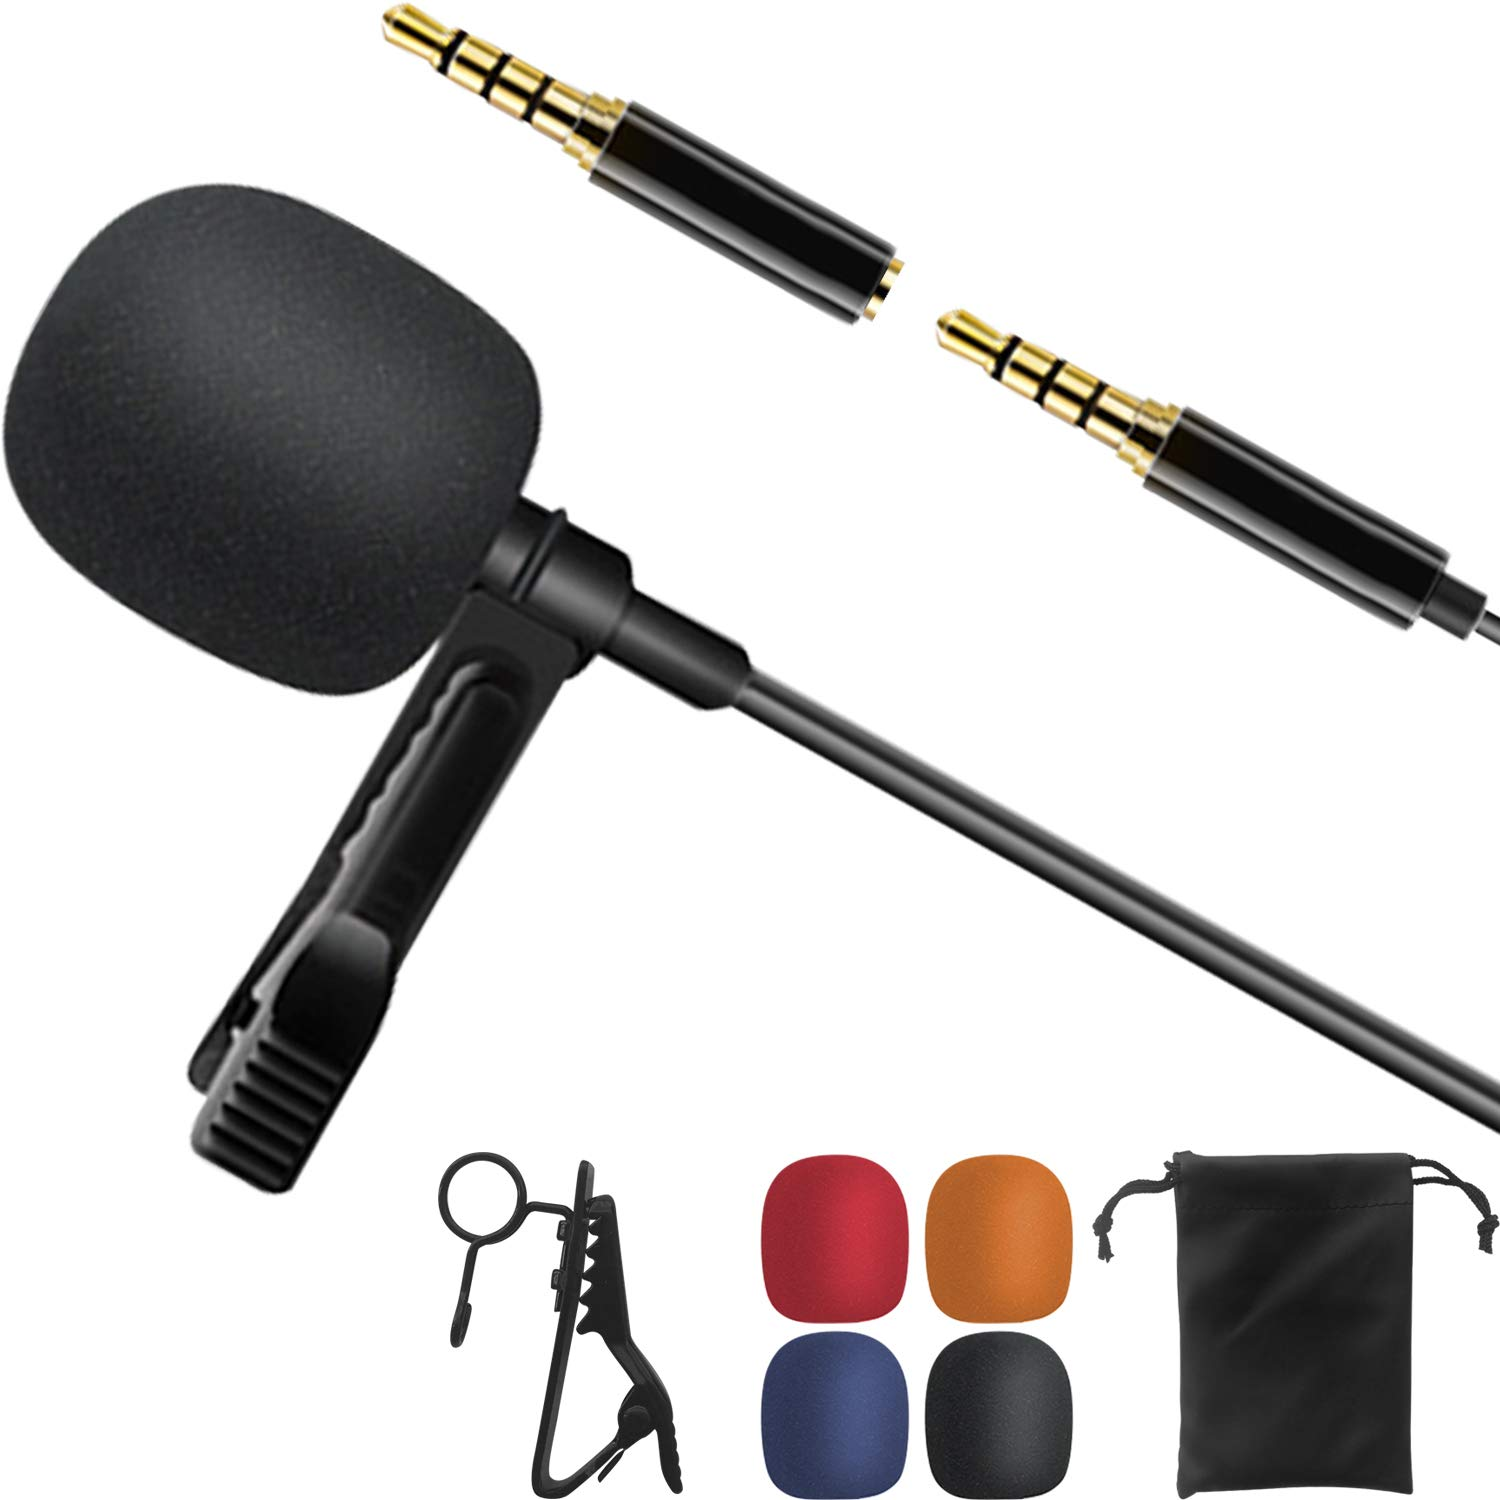 Lavalier Lapel Microphone for iPhone Android Smartphone, Omnidirectional Condenser Mic for DSLR Camcorder Laptops, Recording Mic for Youtube,Interview,Video,Vlogging